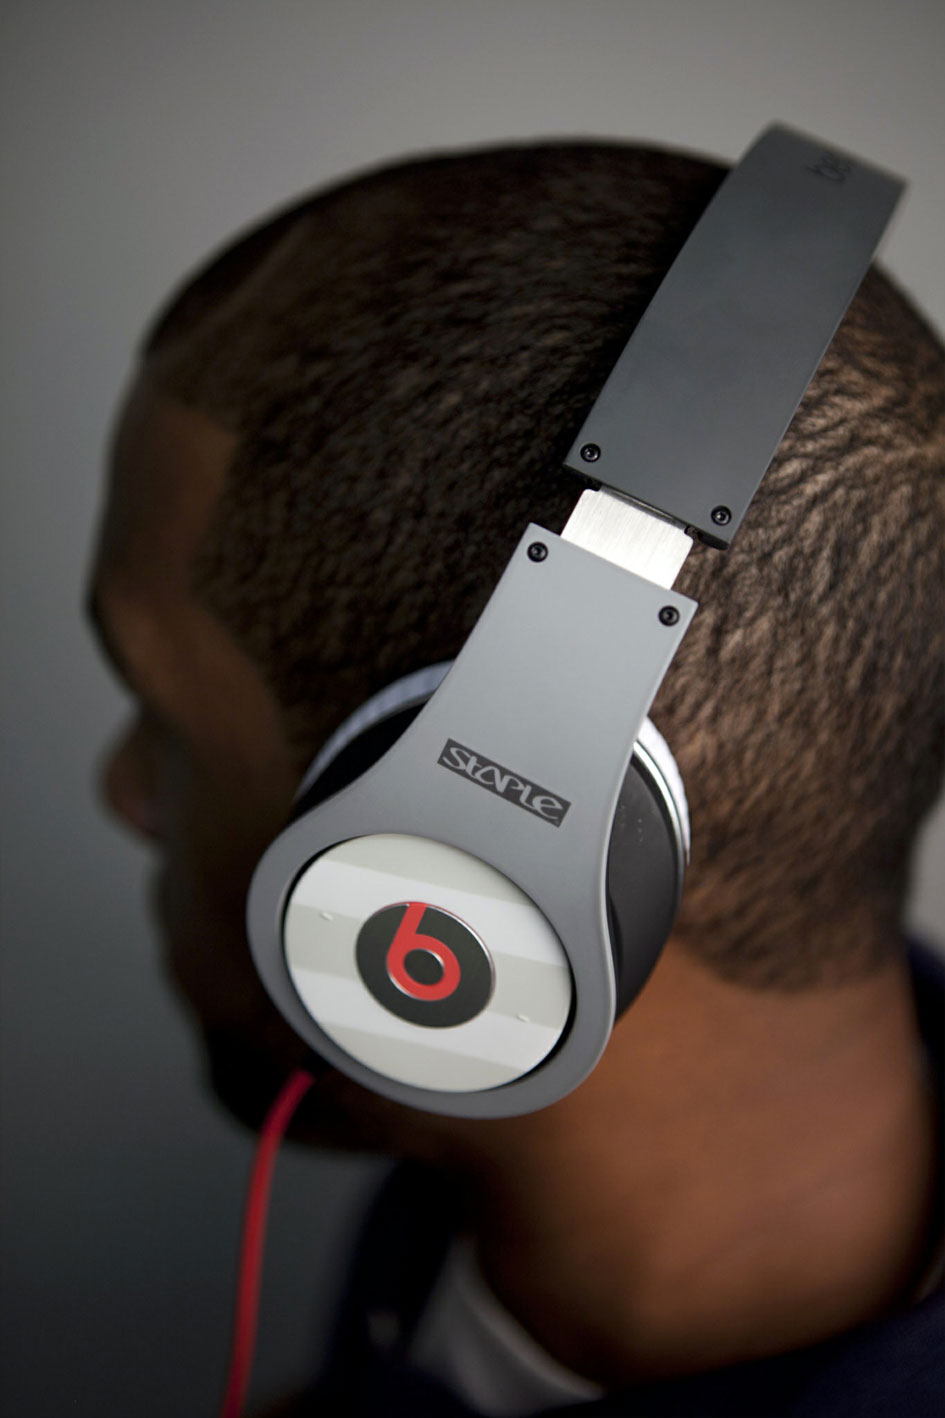 Staple x Beats by Dre Studio